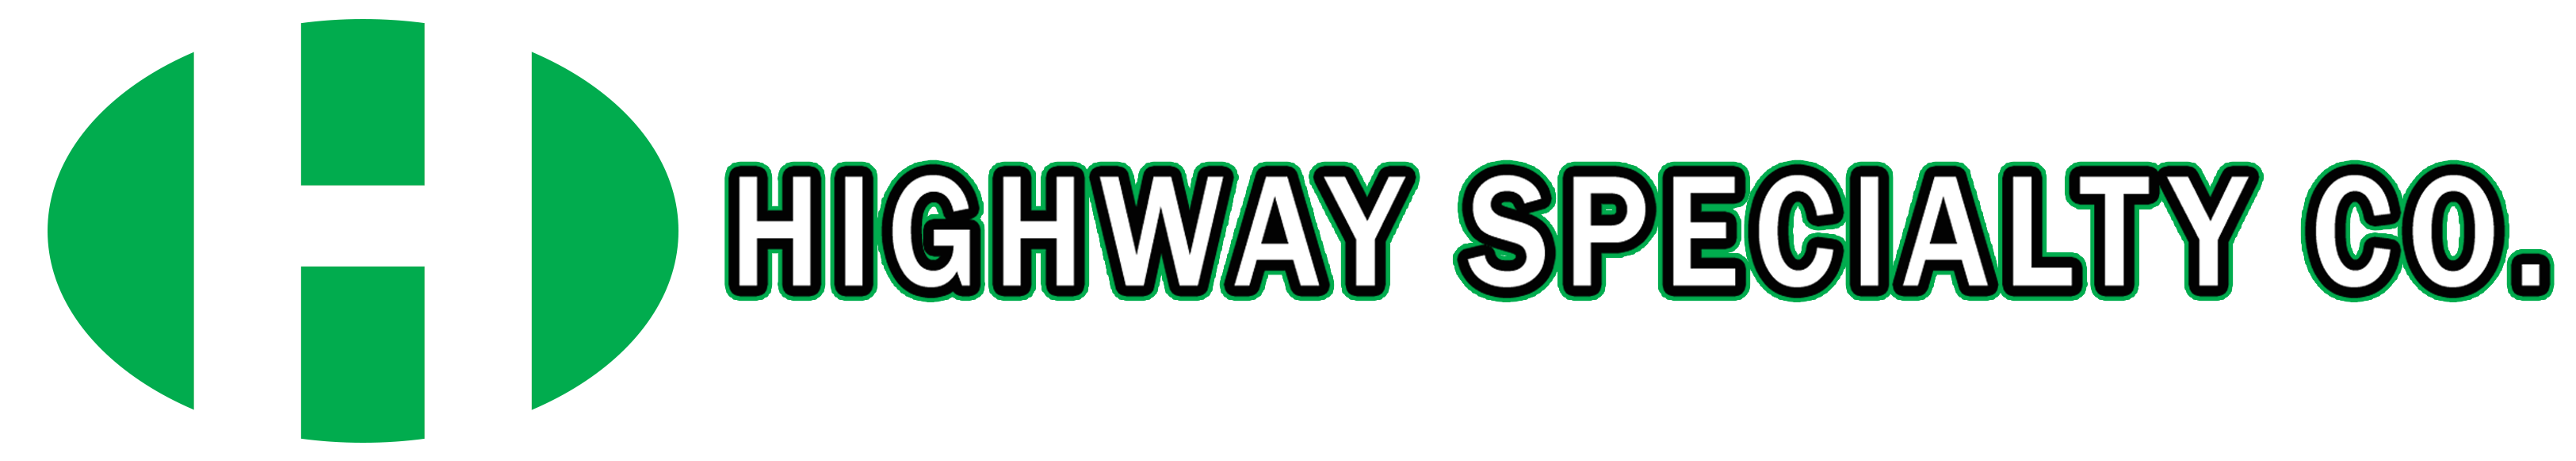 Highway Specialty Co., Inc.